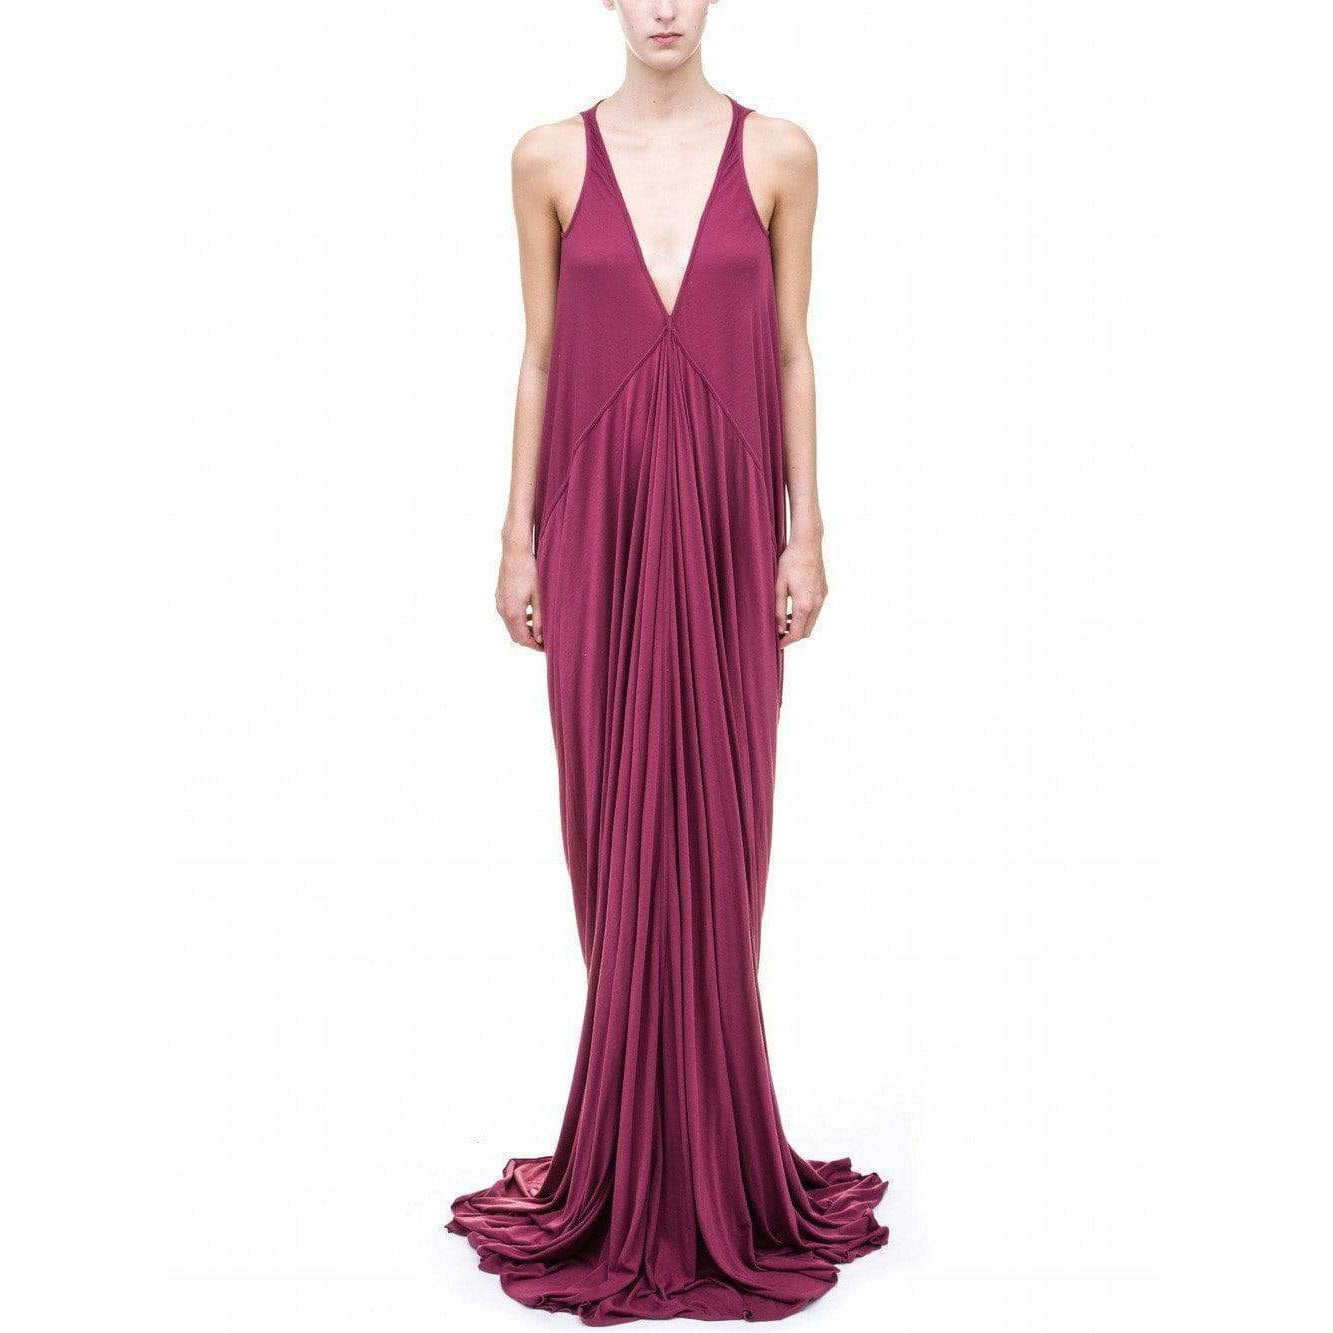 Rick Owens Lilies Dresses 40 / Venetian Red Long V-Neck Dress